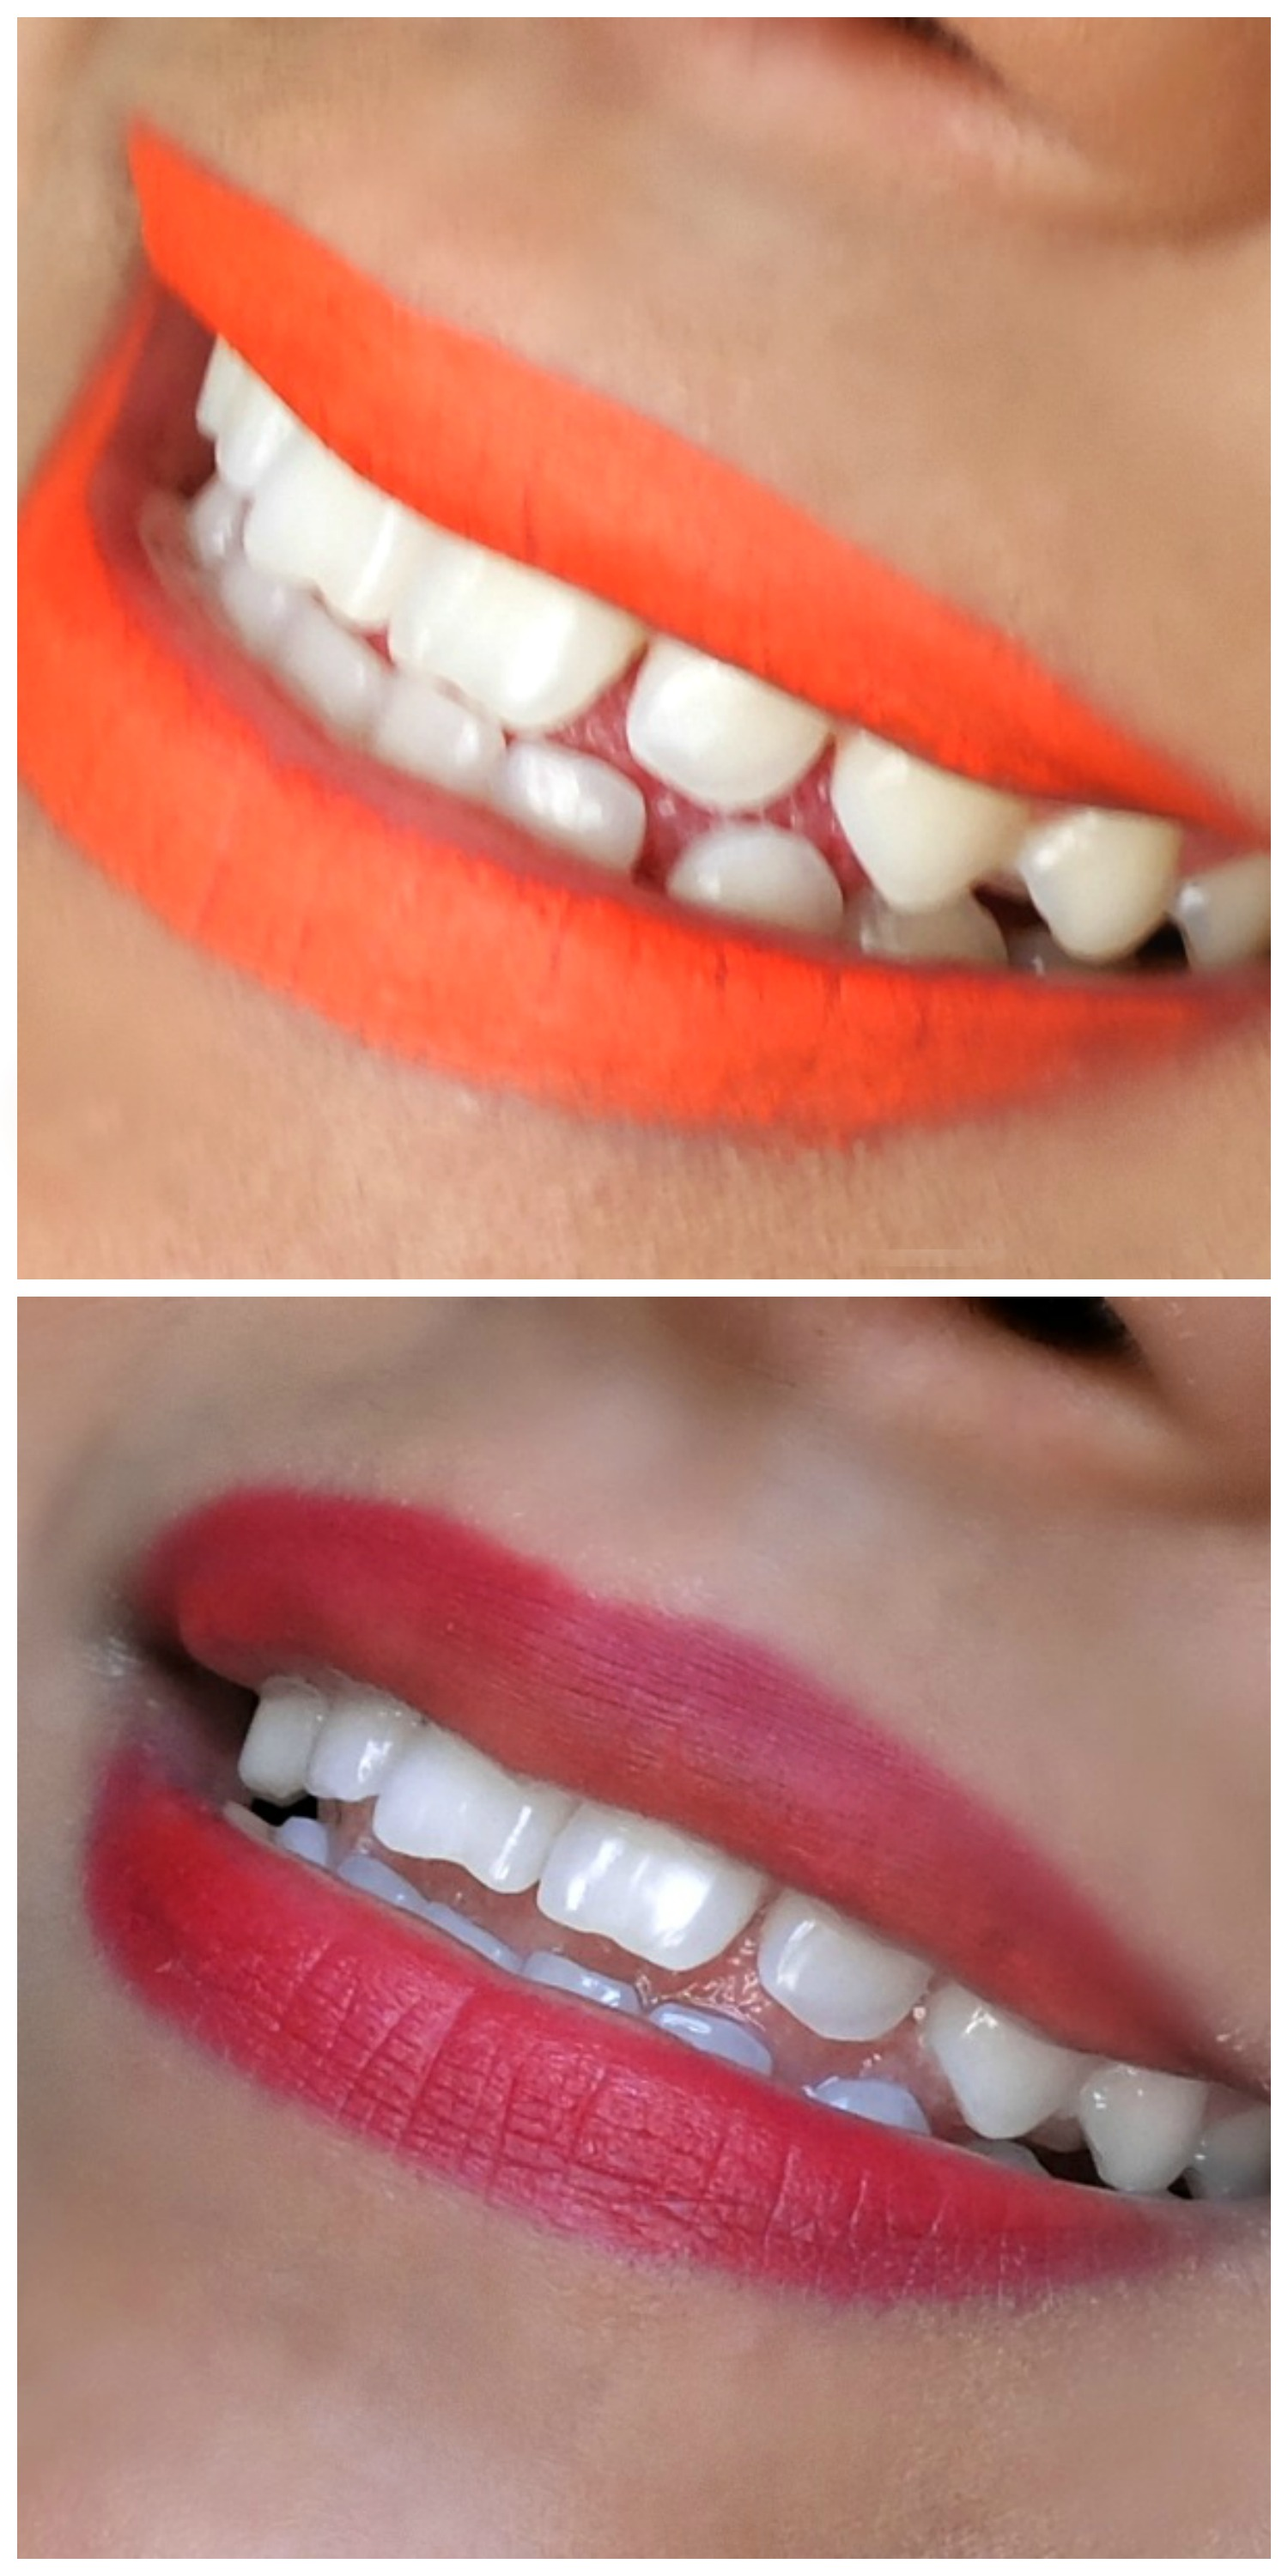 BeforeandAfterResults - The two photos were taken before trying Smile Brilliant and then after (a few days ago). The photos were taken in different lighting so the color temperature may seem different but the results are obvious!